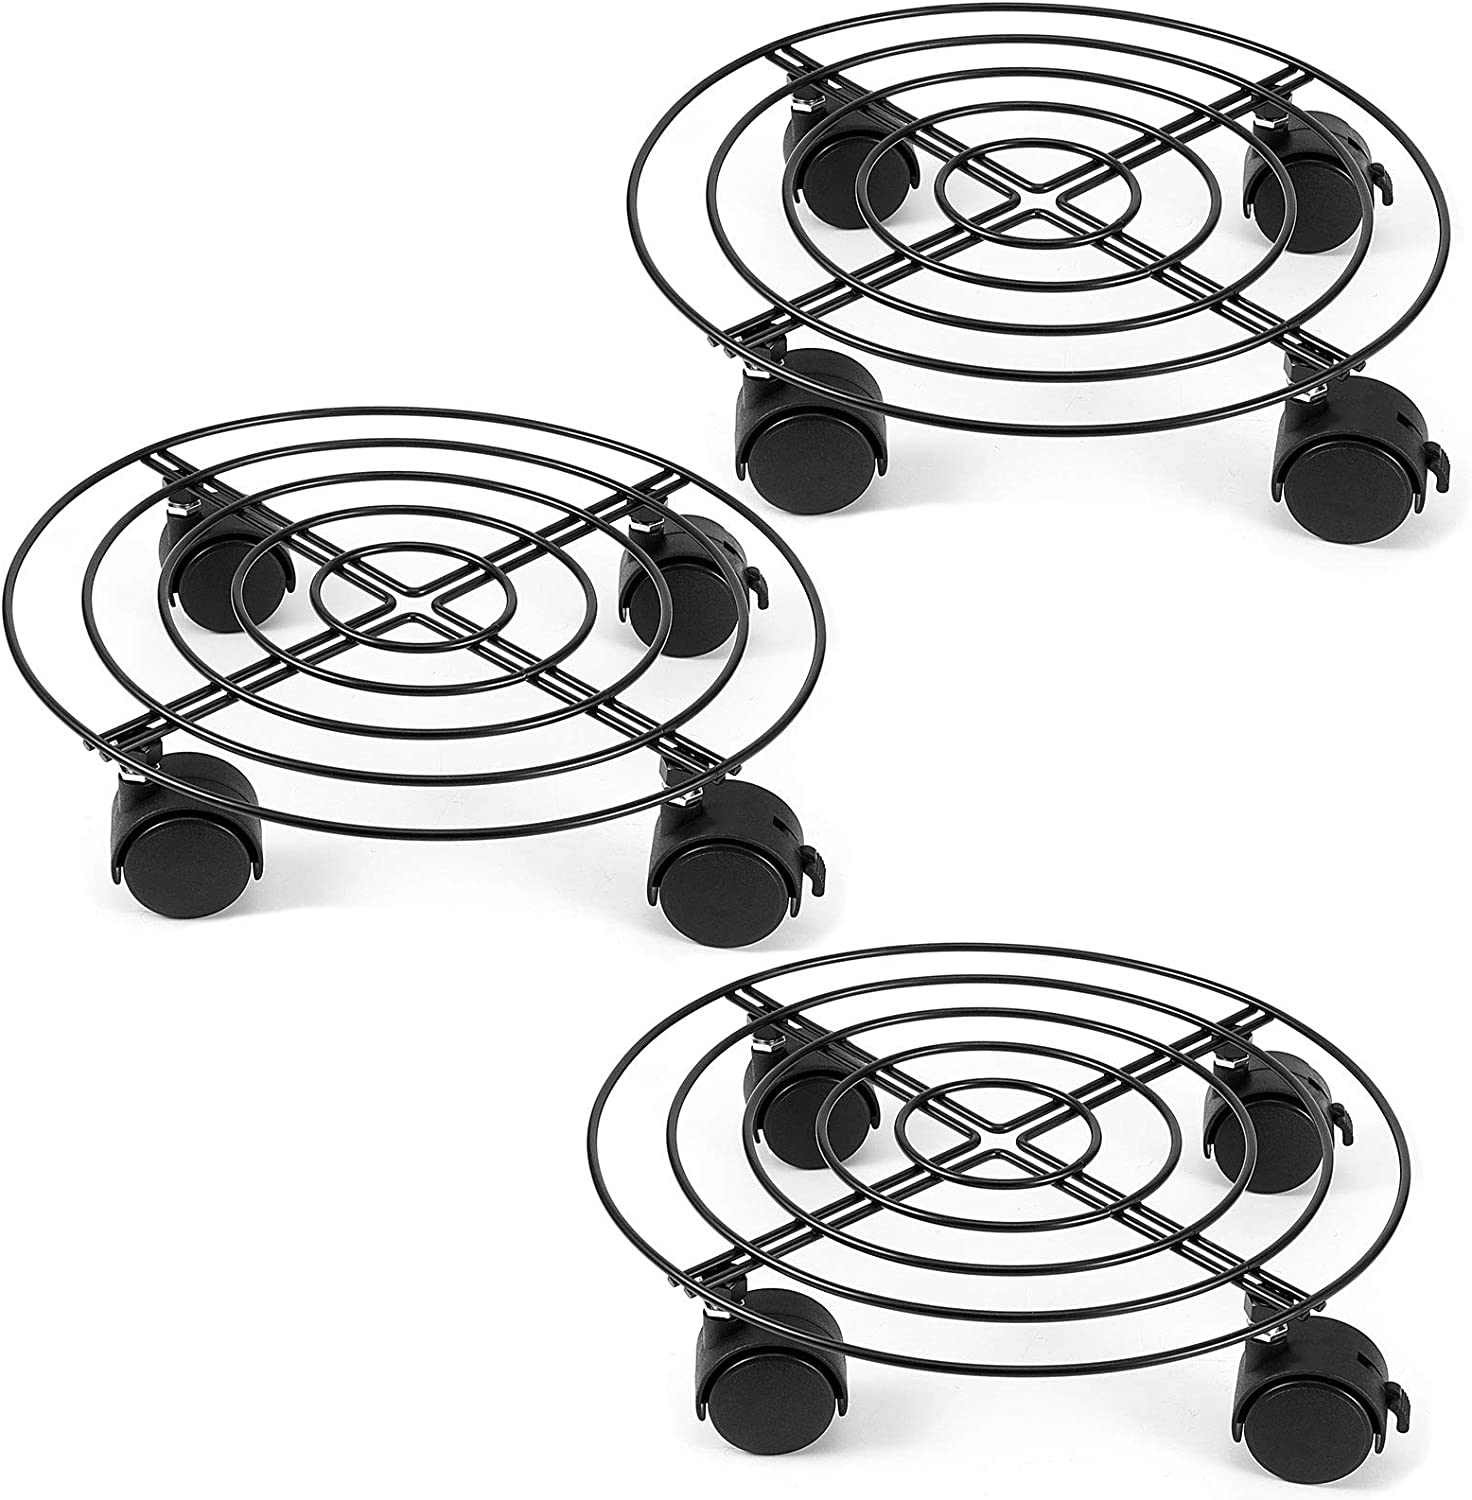 ZOENHOU 3 PCS 10.6 Inches Metal Plant Caddy, Round Flower Pot Rack, Heavy Duty Iron Potted Plant Stand, Trolley Casters with Lockable Rollers for Indoor, Outdoor, Patio, Home and Garden, Black